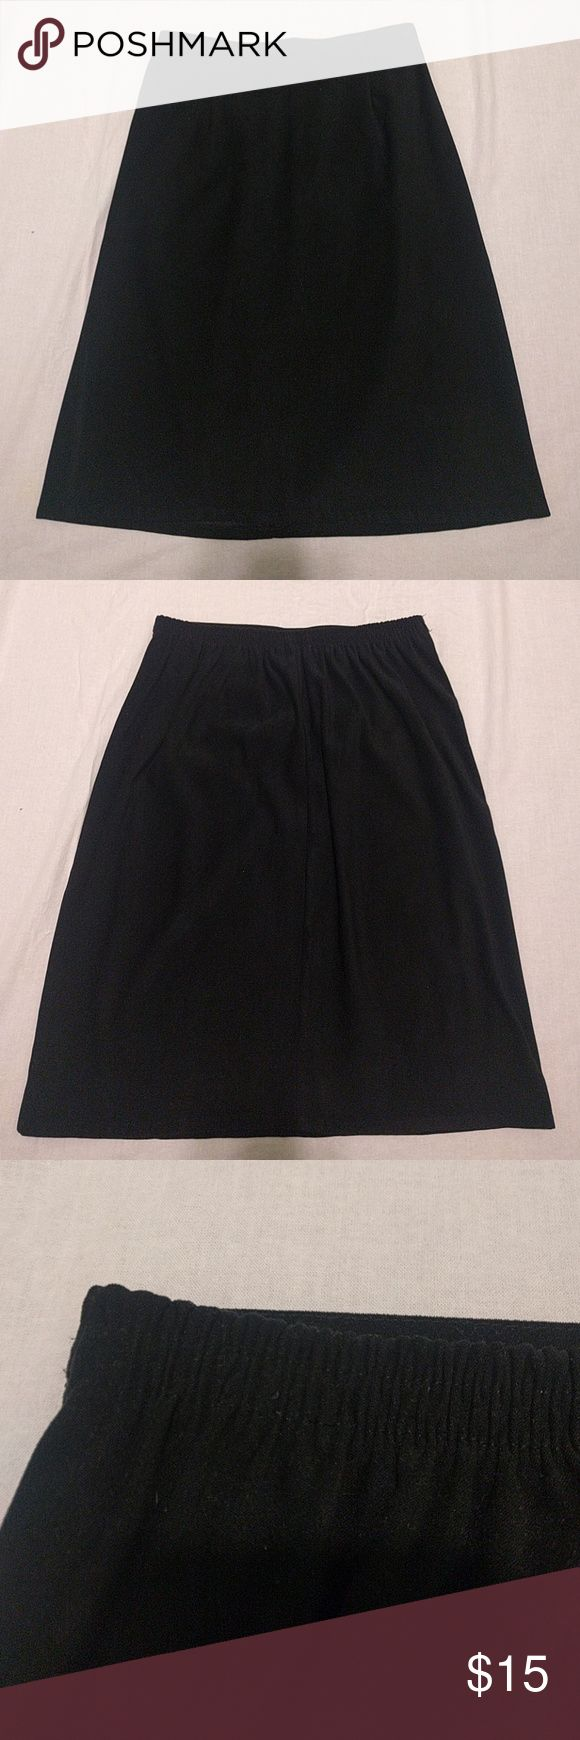 Long Black Pencil Skirt Soft suede like stretchy material. Elastic back waistband.   Waist 14 in Hips 19.5 in Length 23 in CLIO Skirts Pencil